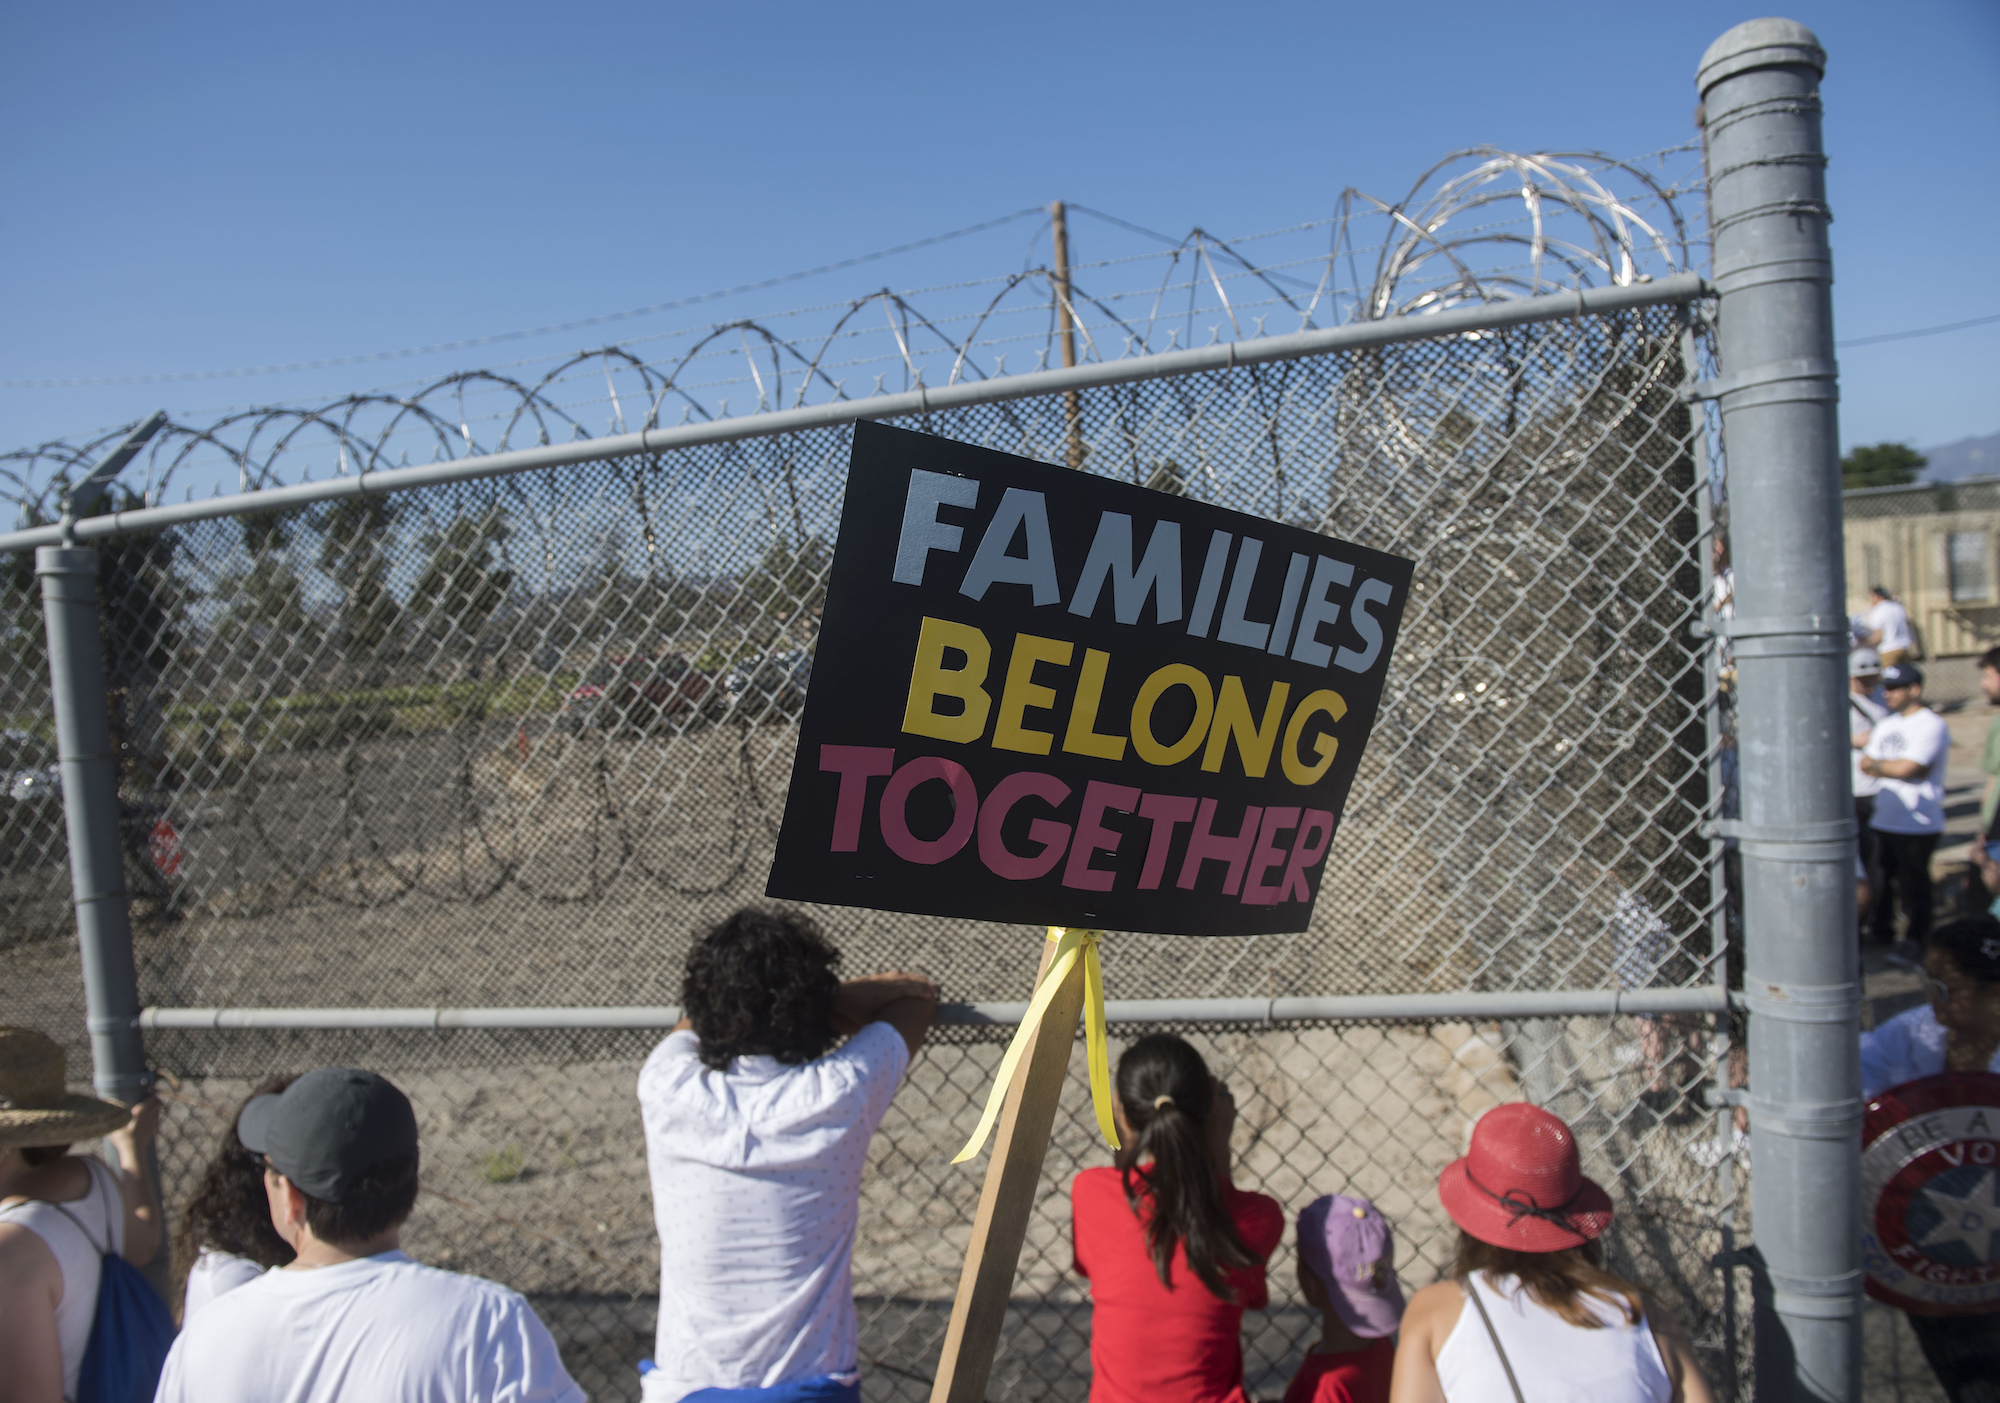 COLUMN: Trump's disastrous immigration policies will continue to destroy lives